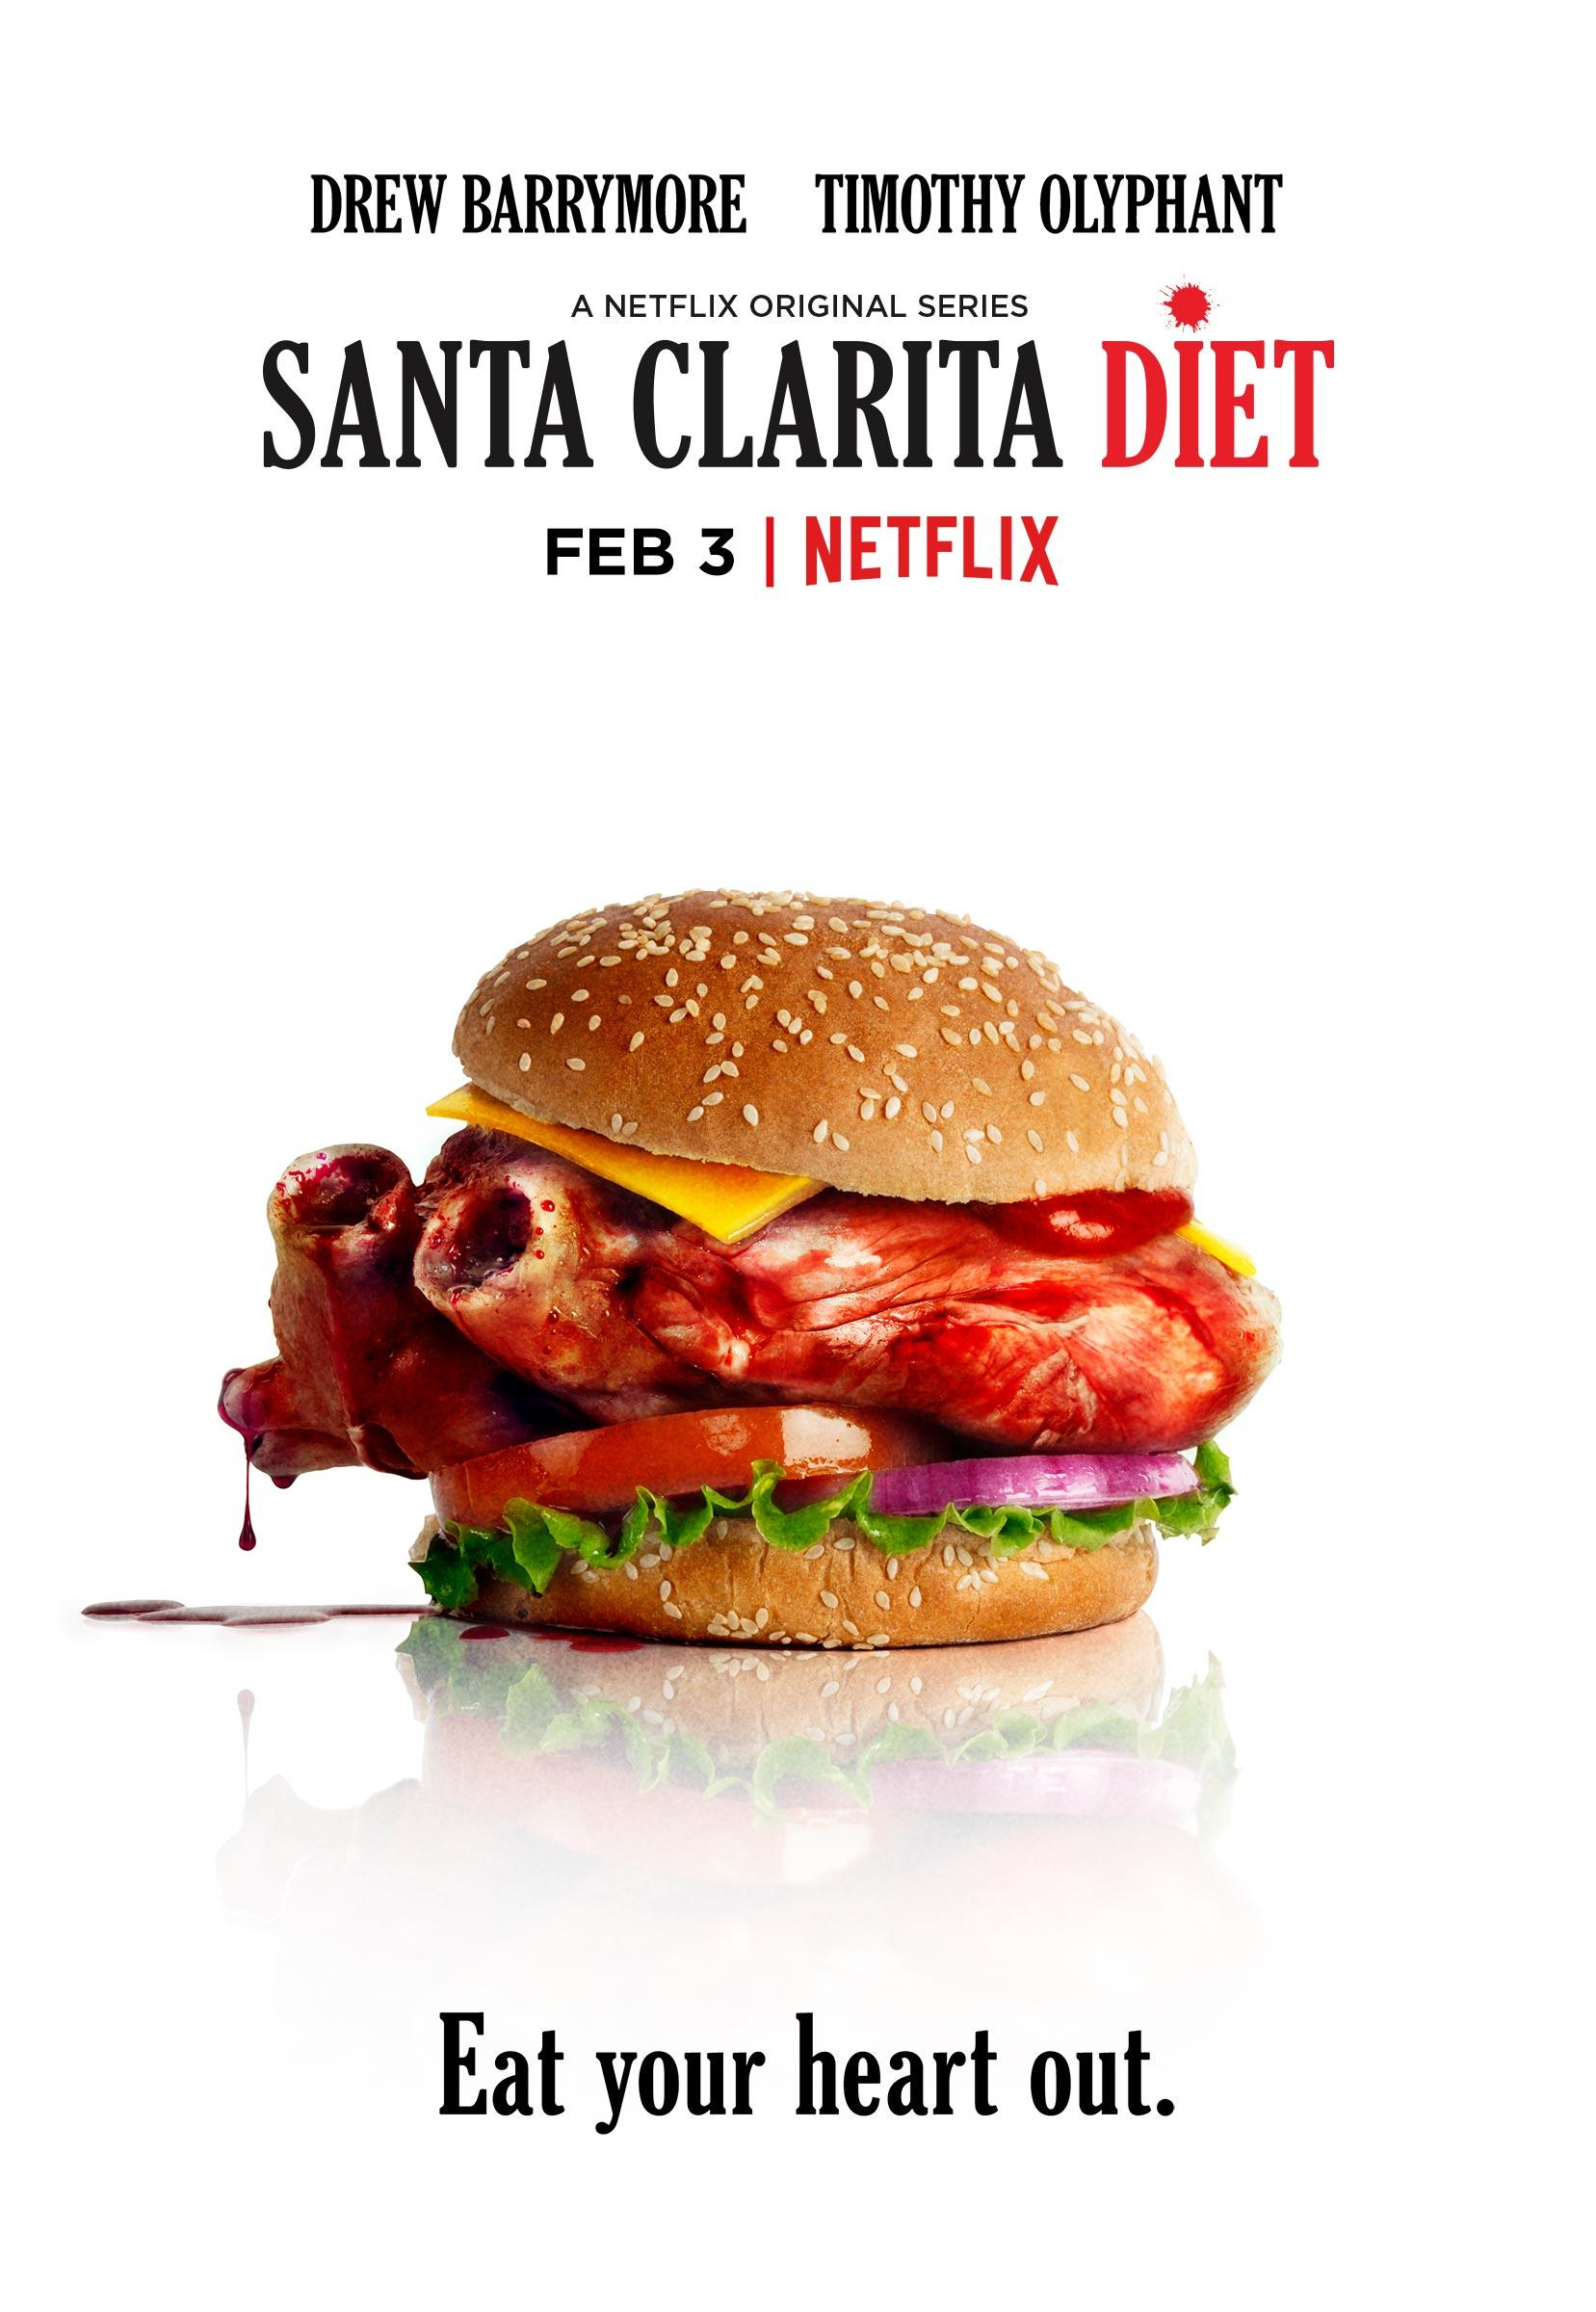 Santa Clarita Diet Outdoor Ad - Eat your heart out